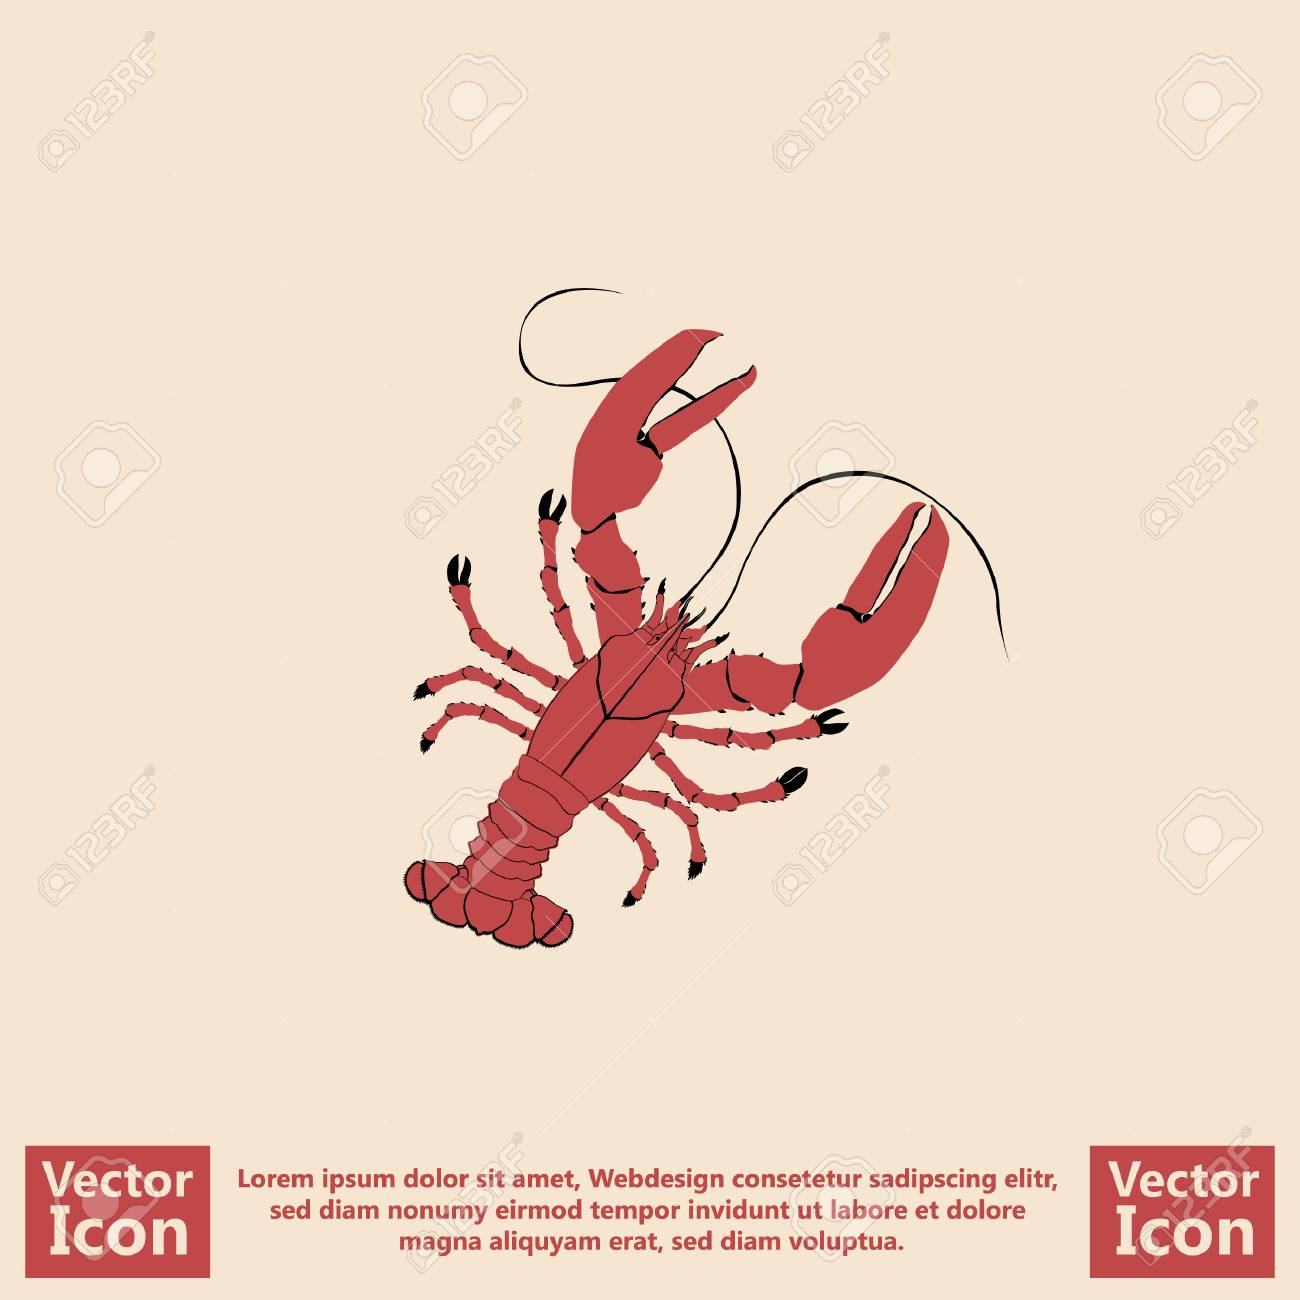 Flat Style Icon With Lobster Symbol Royalty Free Cliparts Vectors